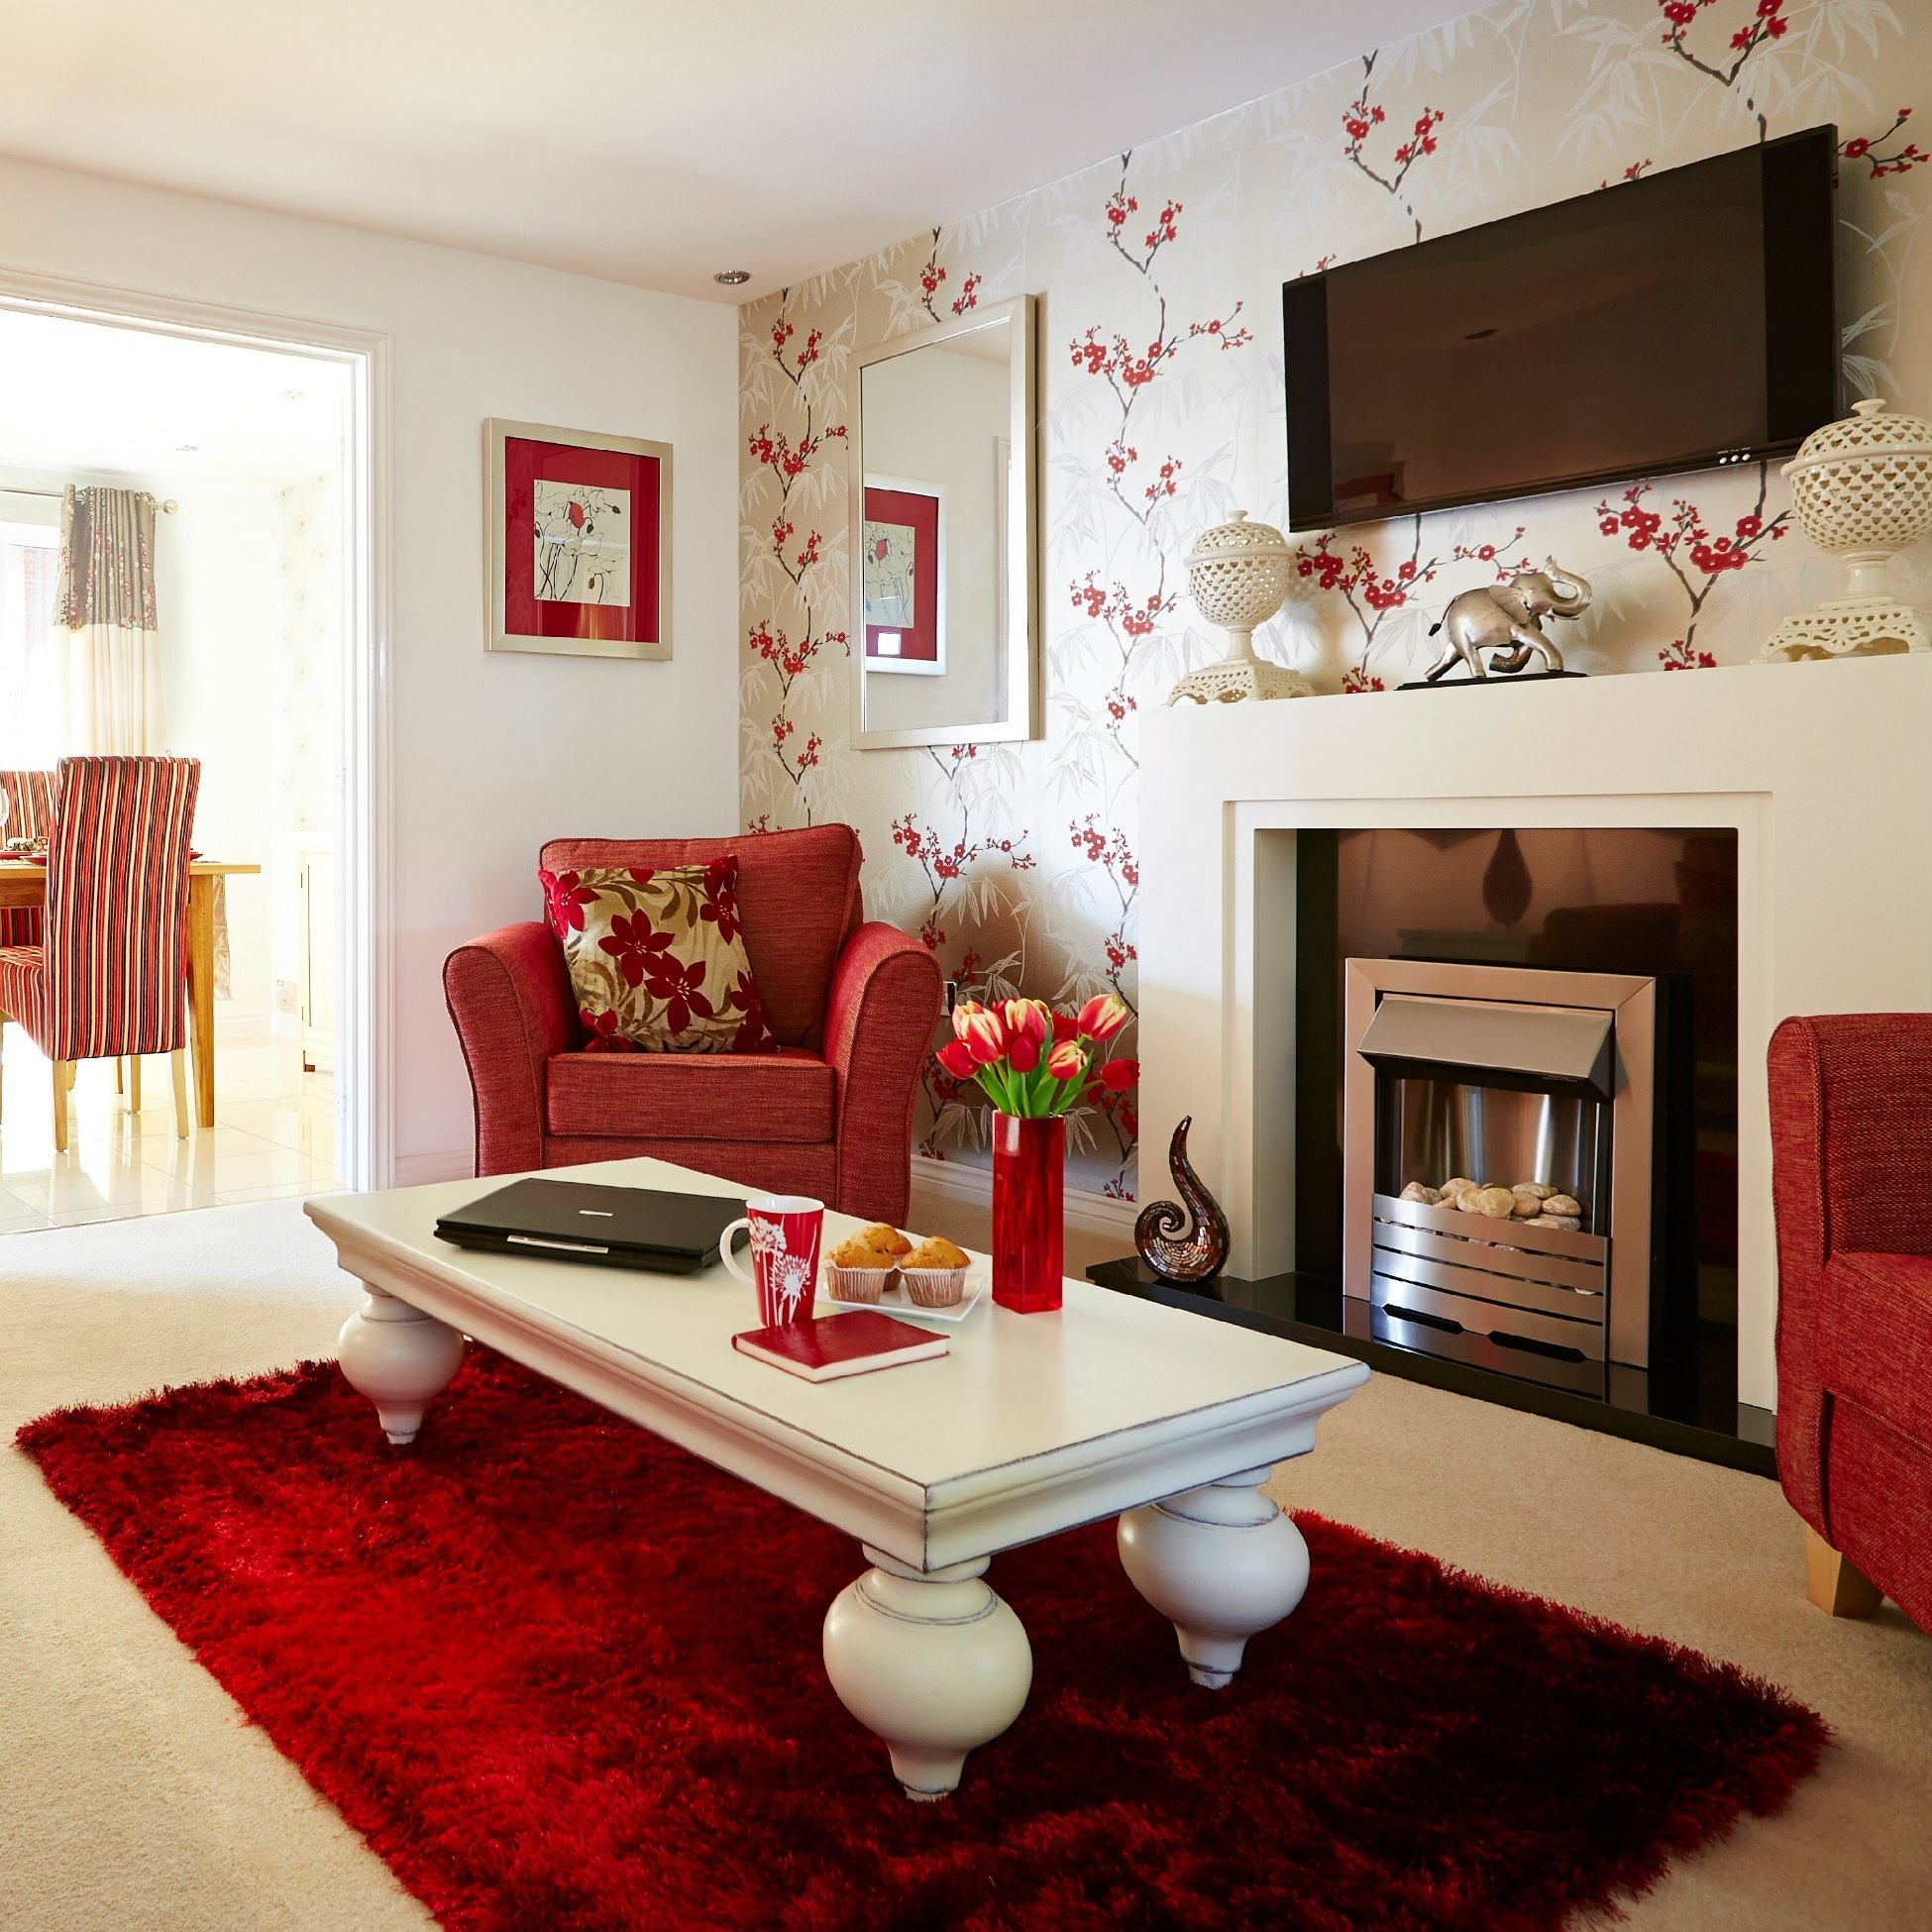 A plush red rug and ornate coffee table together with a feature a plush red rug and ornate coffee table together with a feature wall give geotapseo Gallery